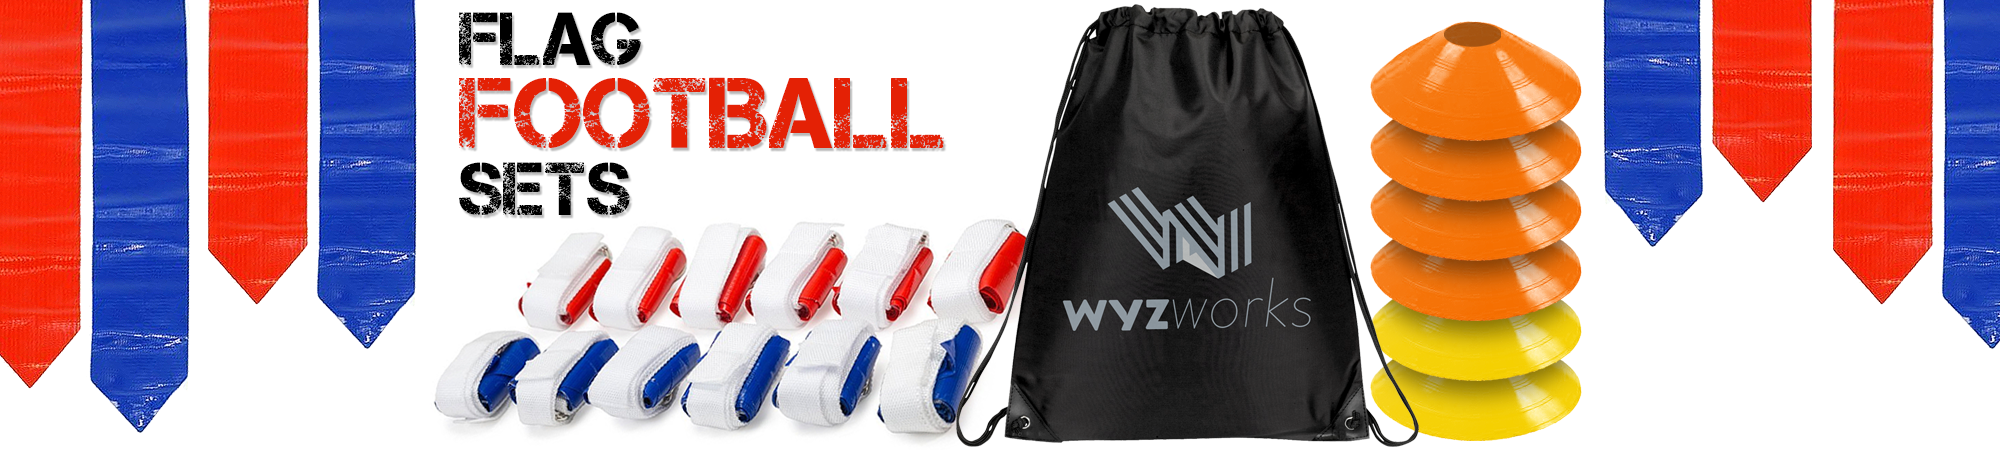 WYZWORKS-HOME-BANNER2366